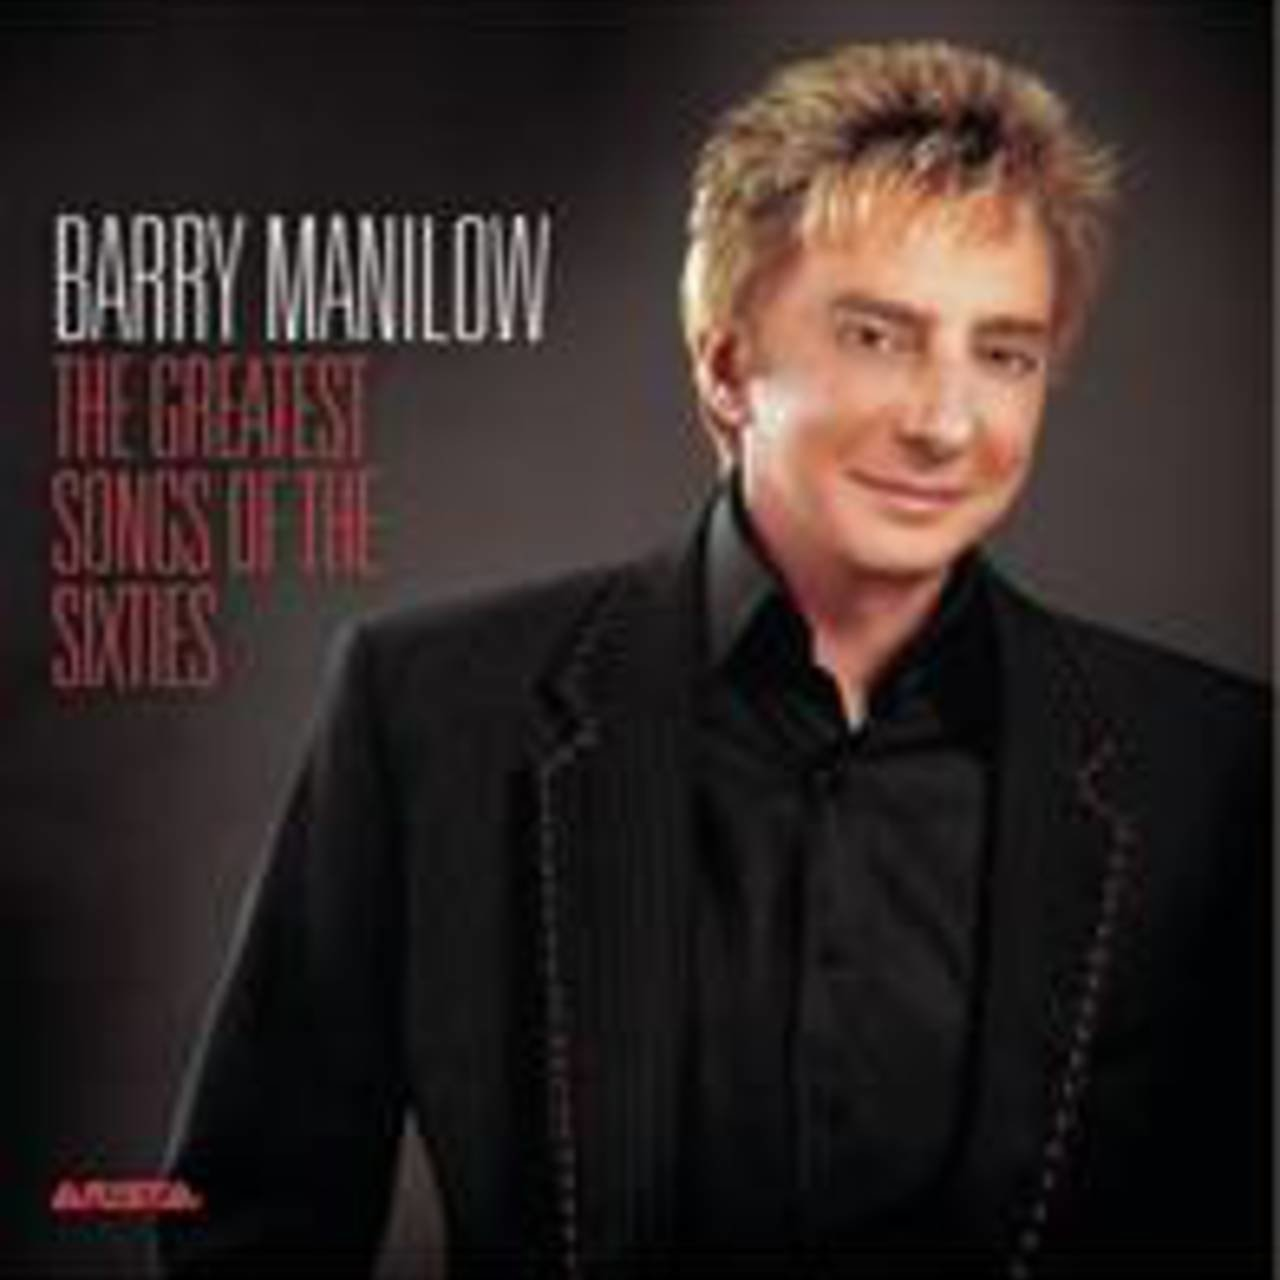 The Greatest Songs Of The Sixties / Barry Manilow TIDAL